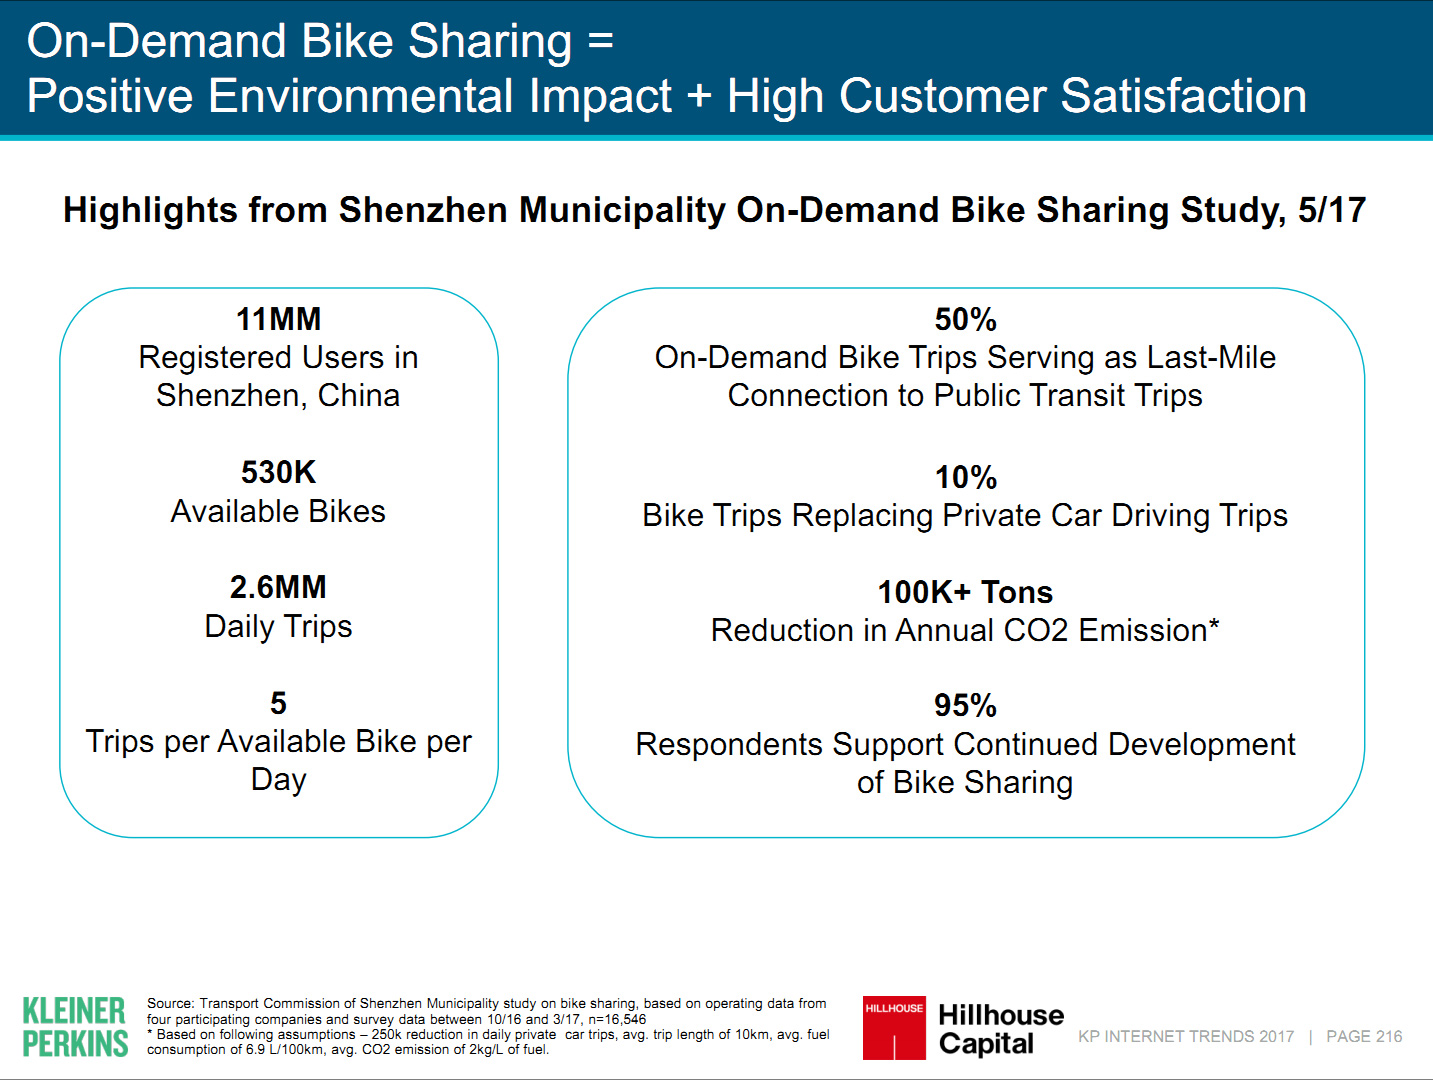 Bike sharing customers are happy